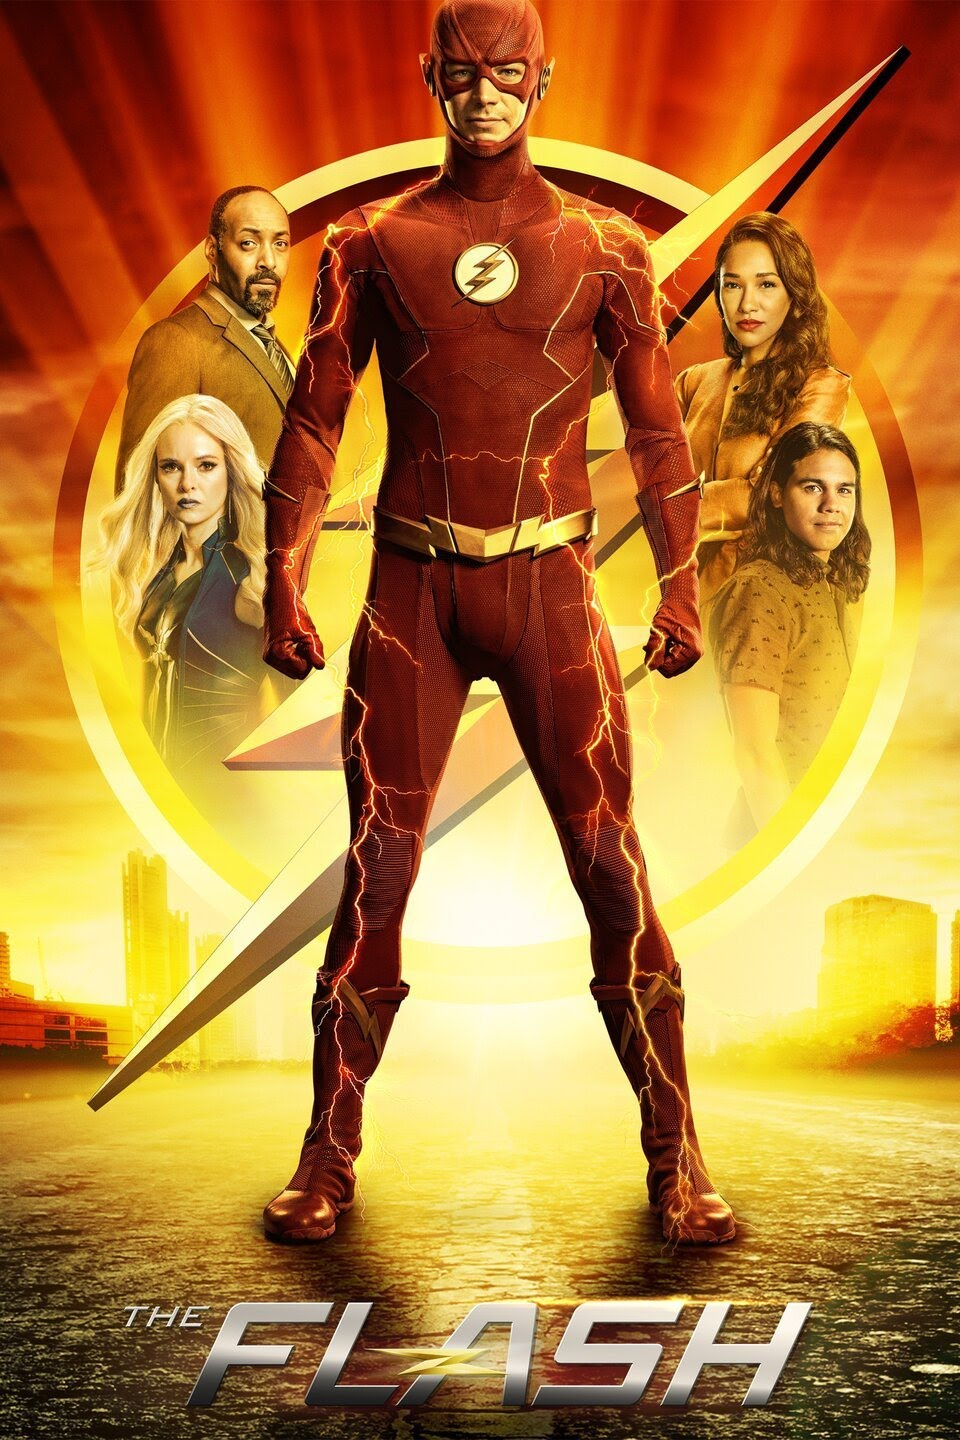 SUBTITLE: The Flash Season 7 Episode 3 (S07E03) SRT DOWNLOAD